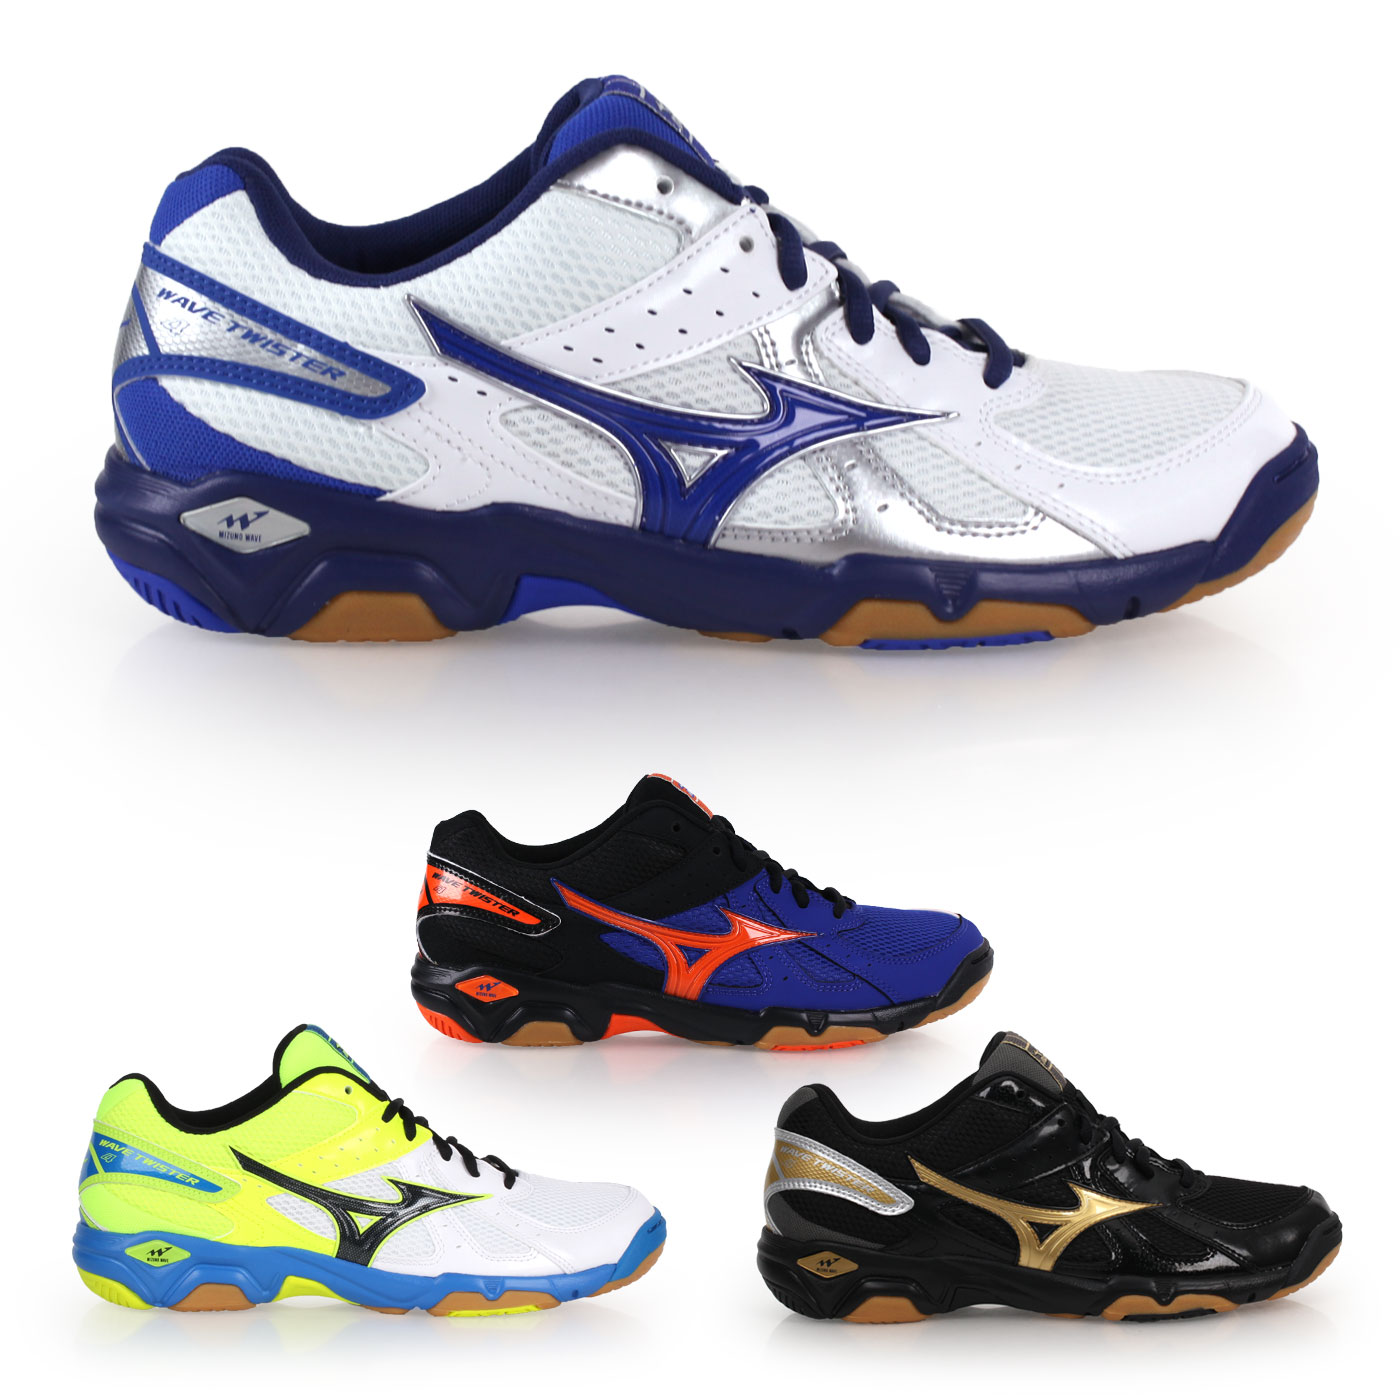 mizuno badminton shoes for sale